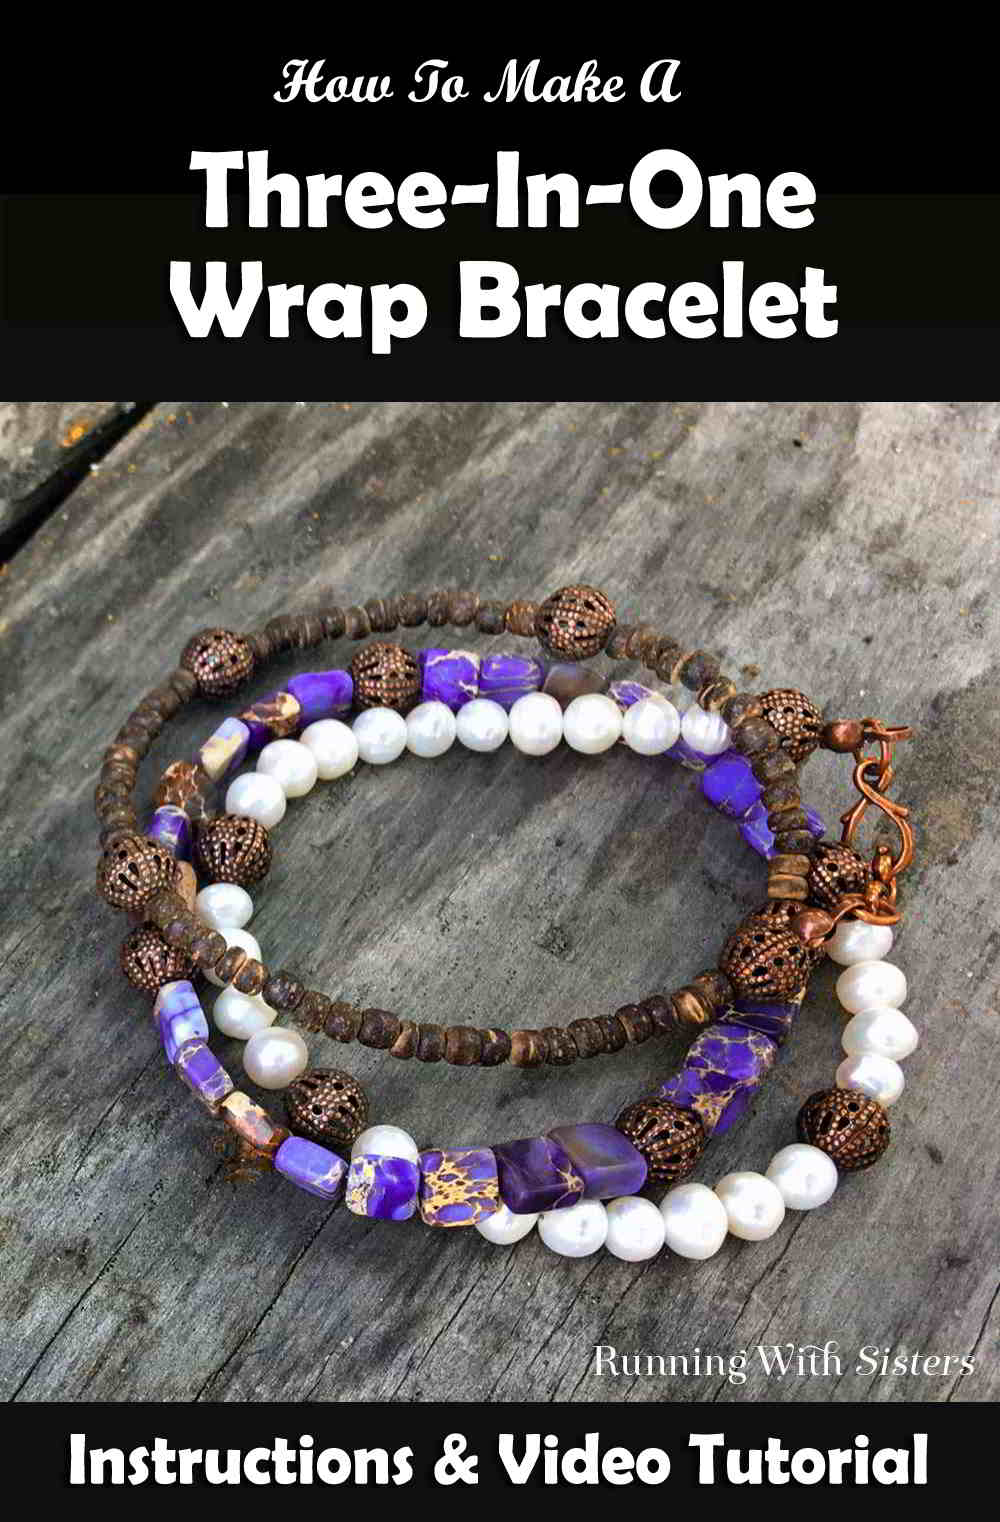 We will show you basic bead stringing to make your own Three-In-One Wrap Bracelet that looks like three stacked bracelets. Easy to make and easy to wear!